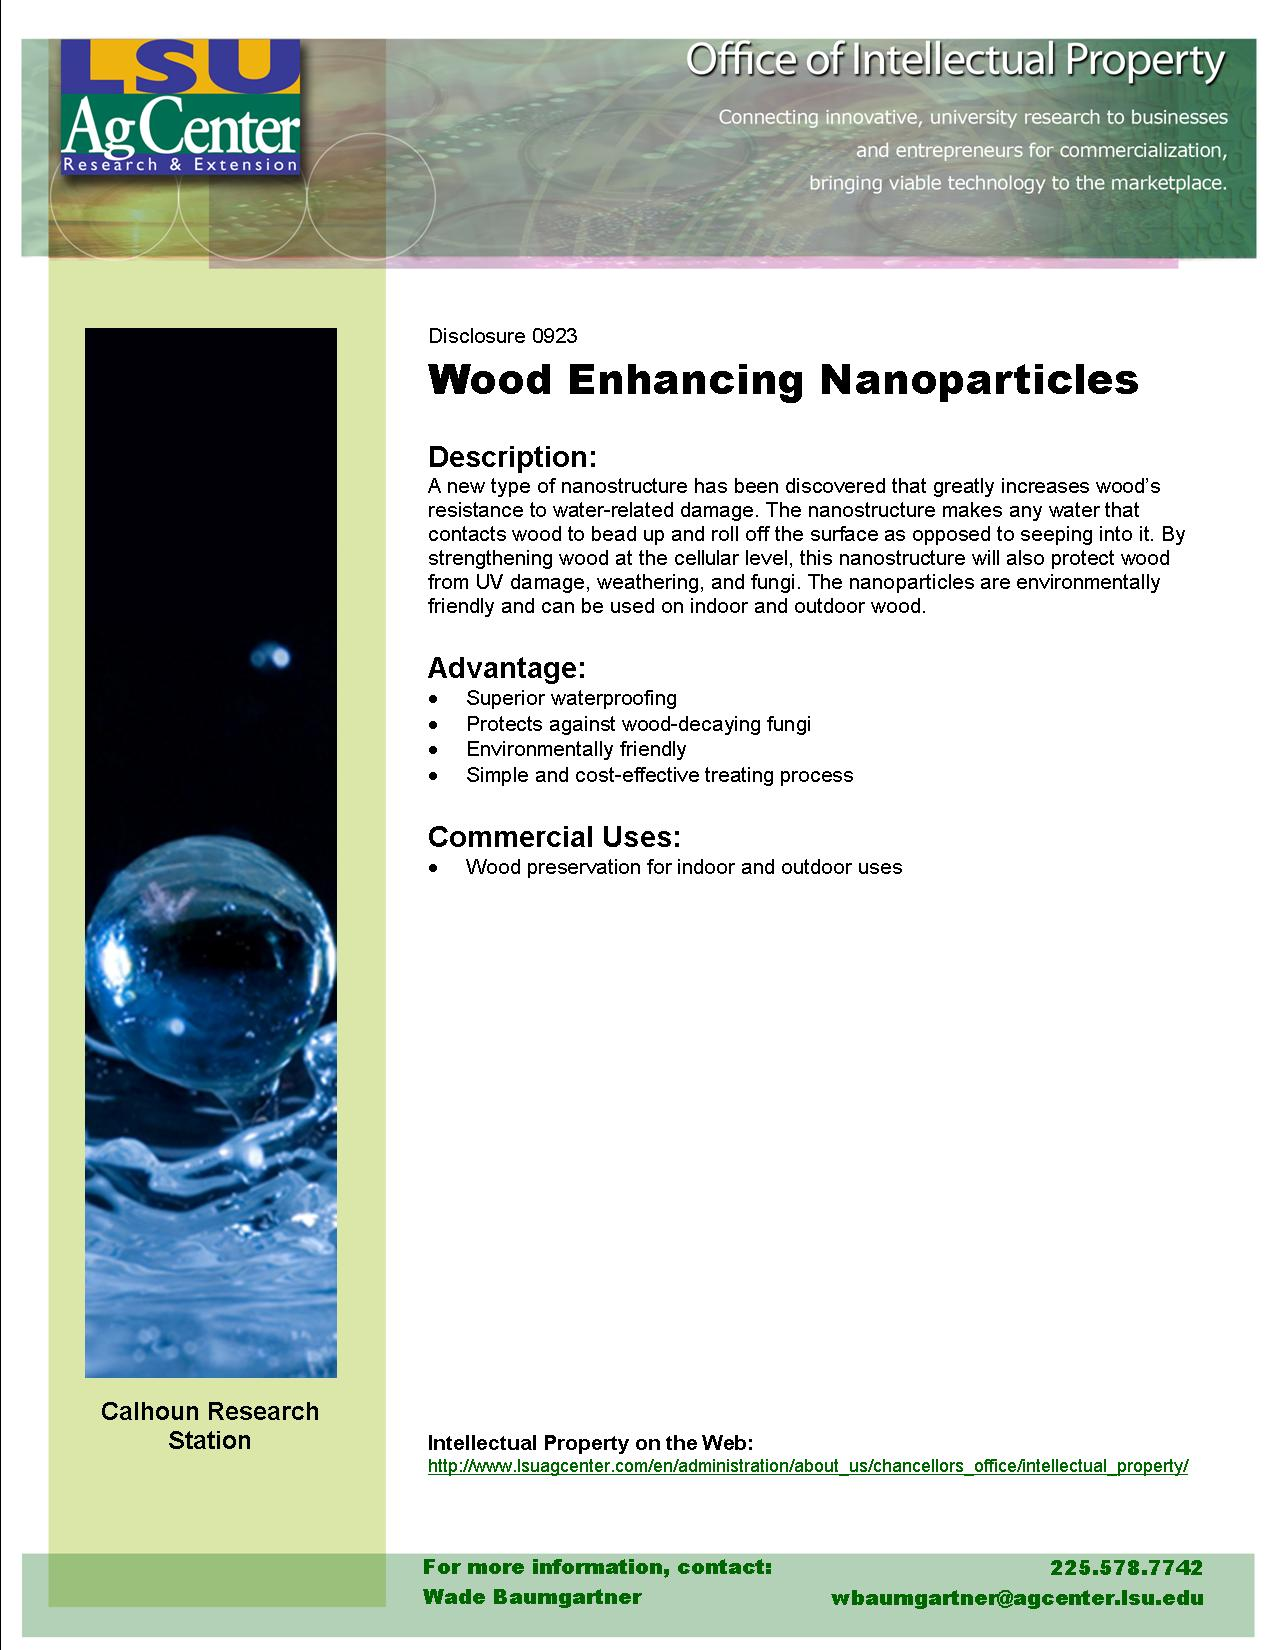 Wood-enhancing Nanoparticles